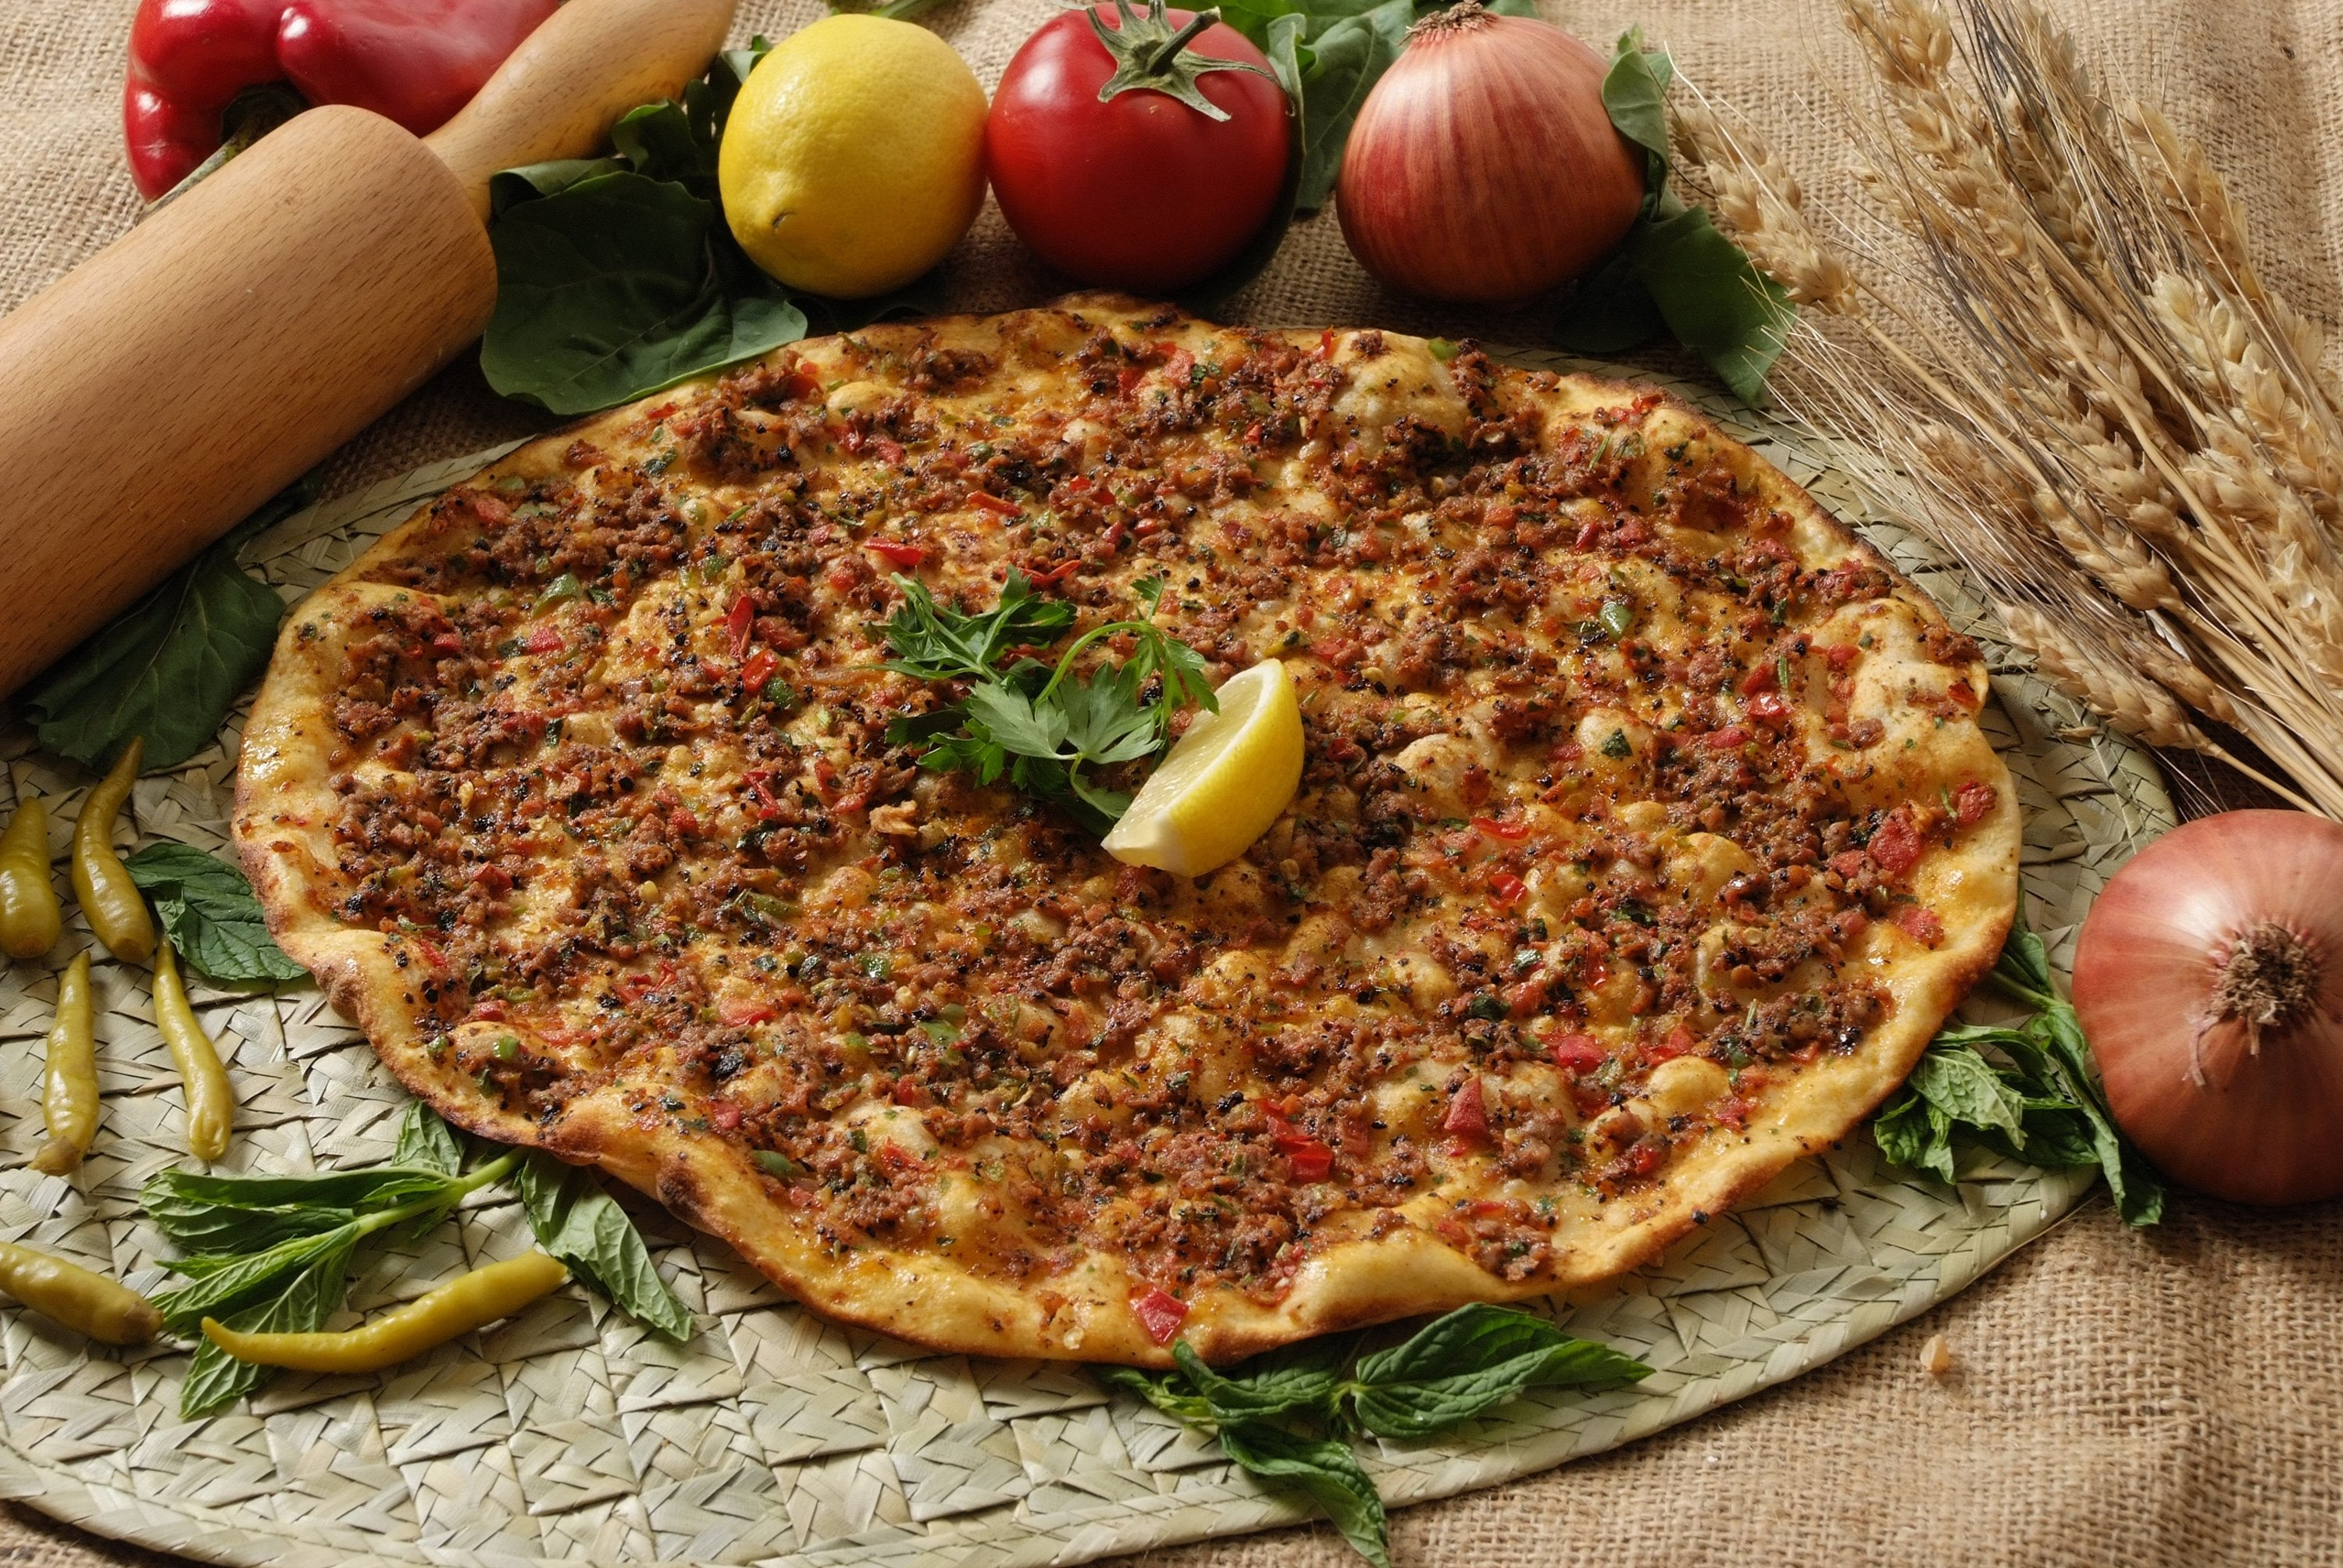 Turkish lahmacun is the lighter cousin of pide and pizza, without the cheese. (Shutterstock Photo)